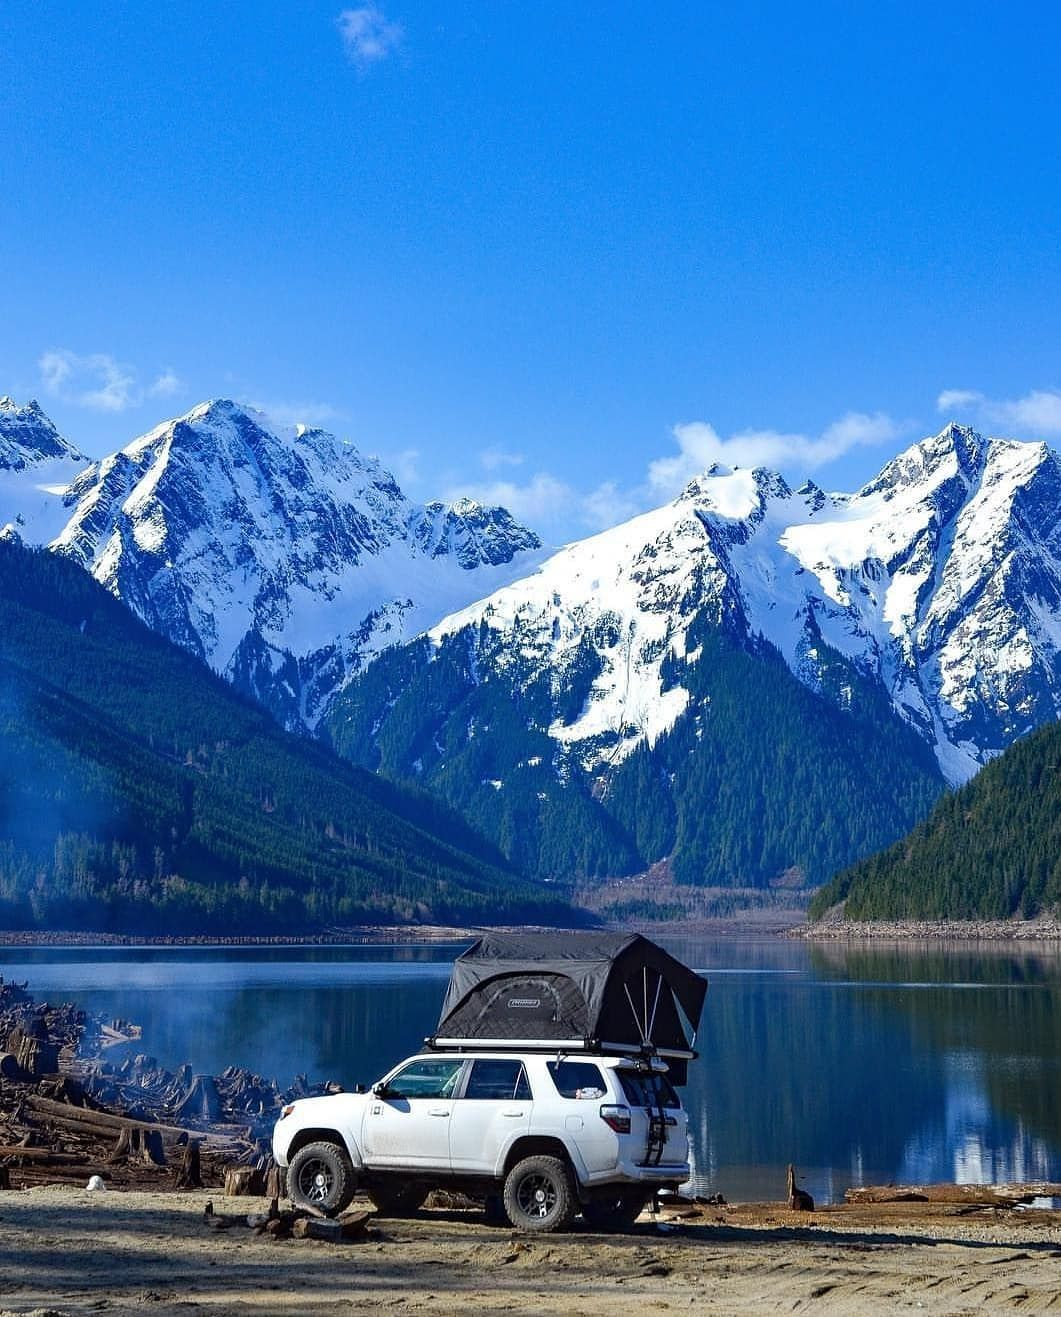 Beautiful Camping Spot On The Lake In This Winter Wonderland Surrounded By The Snowy Mountains With This Aw Camping Spots Snowy Mountains Camping Photo